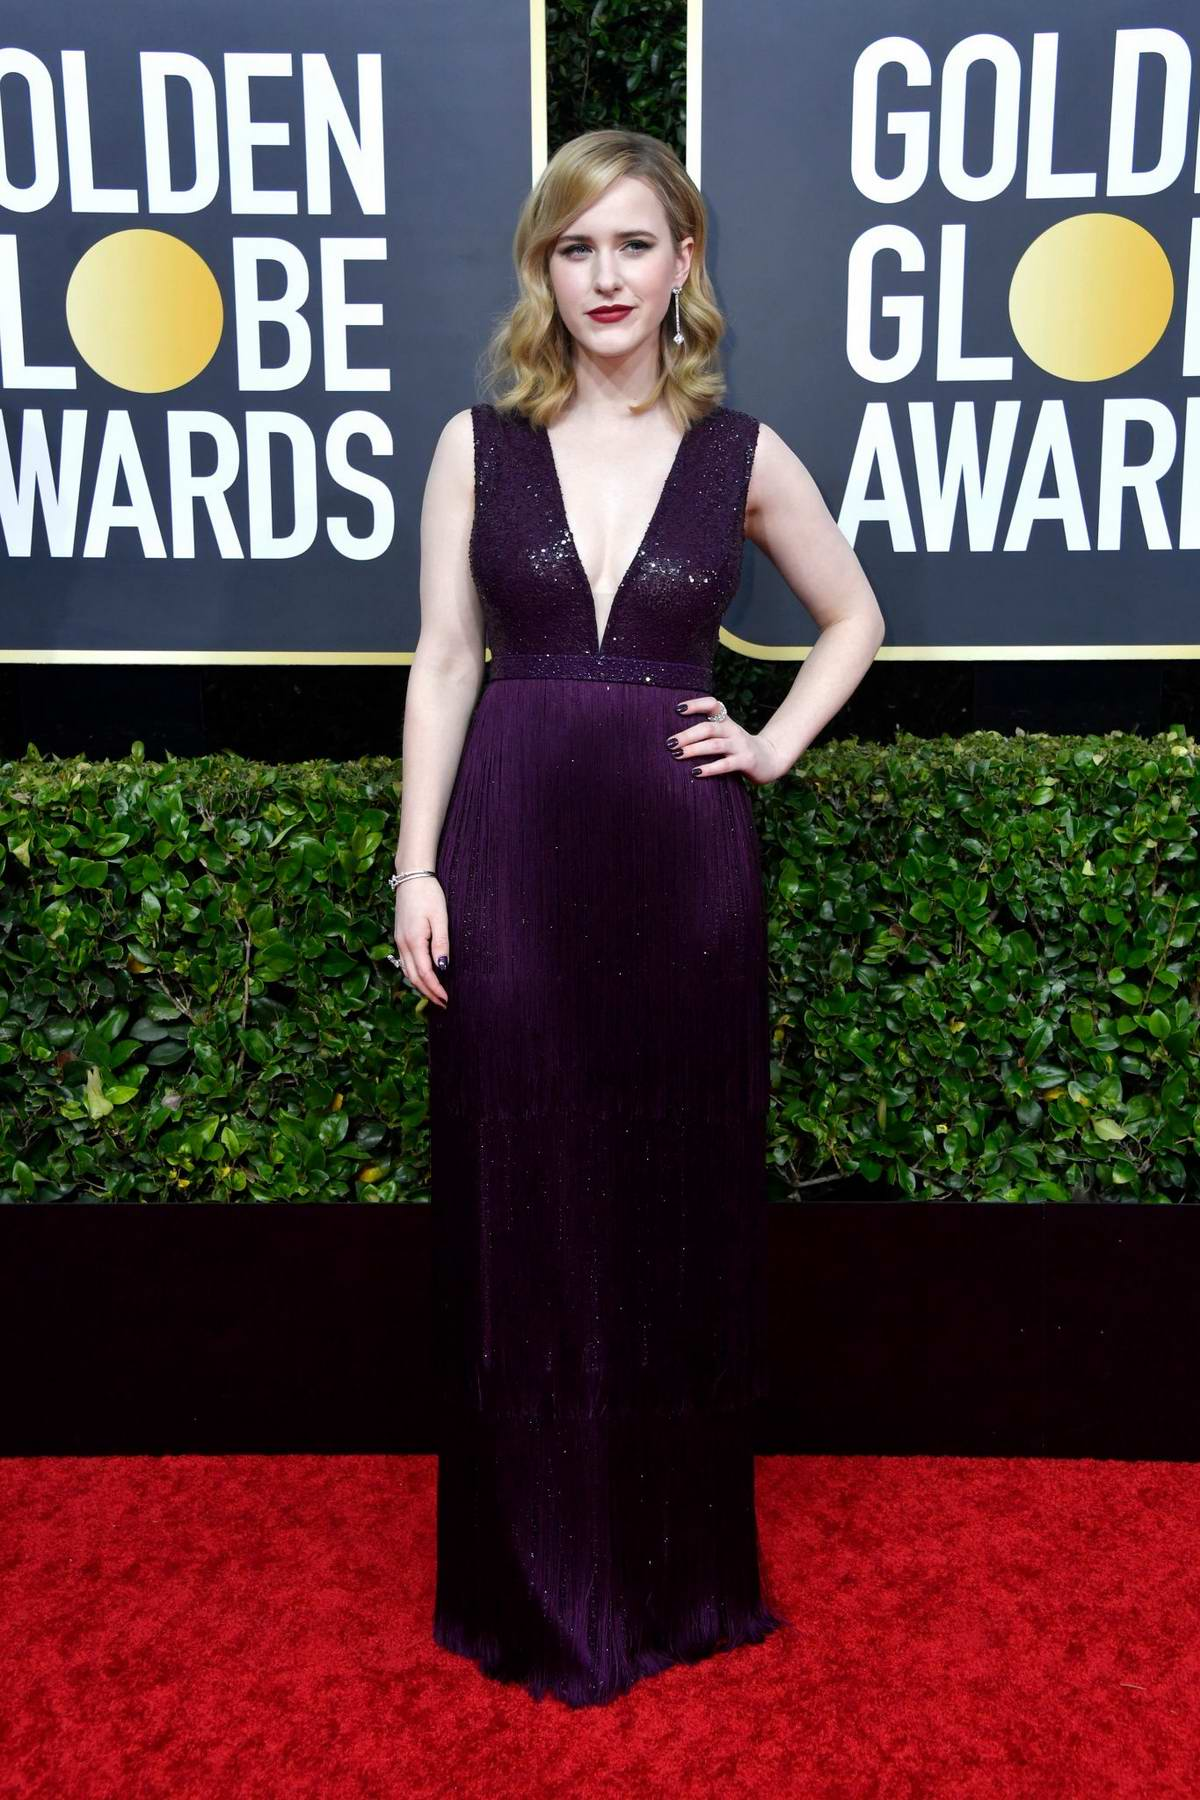 Rachel Brosnahan attends the 77th Annual Golden Globe Awards at The Beverly Hilton Hotel in Beverly Hills, California